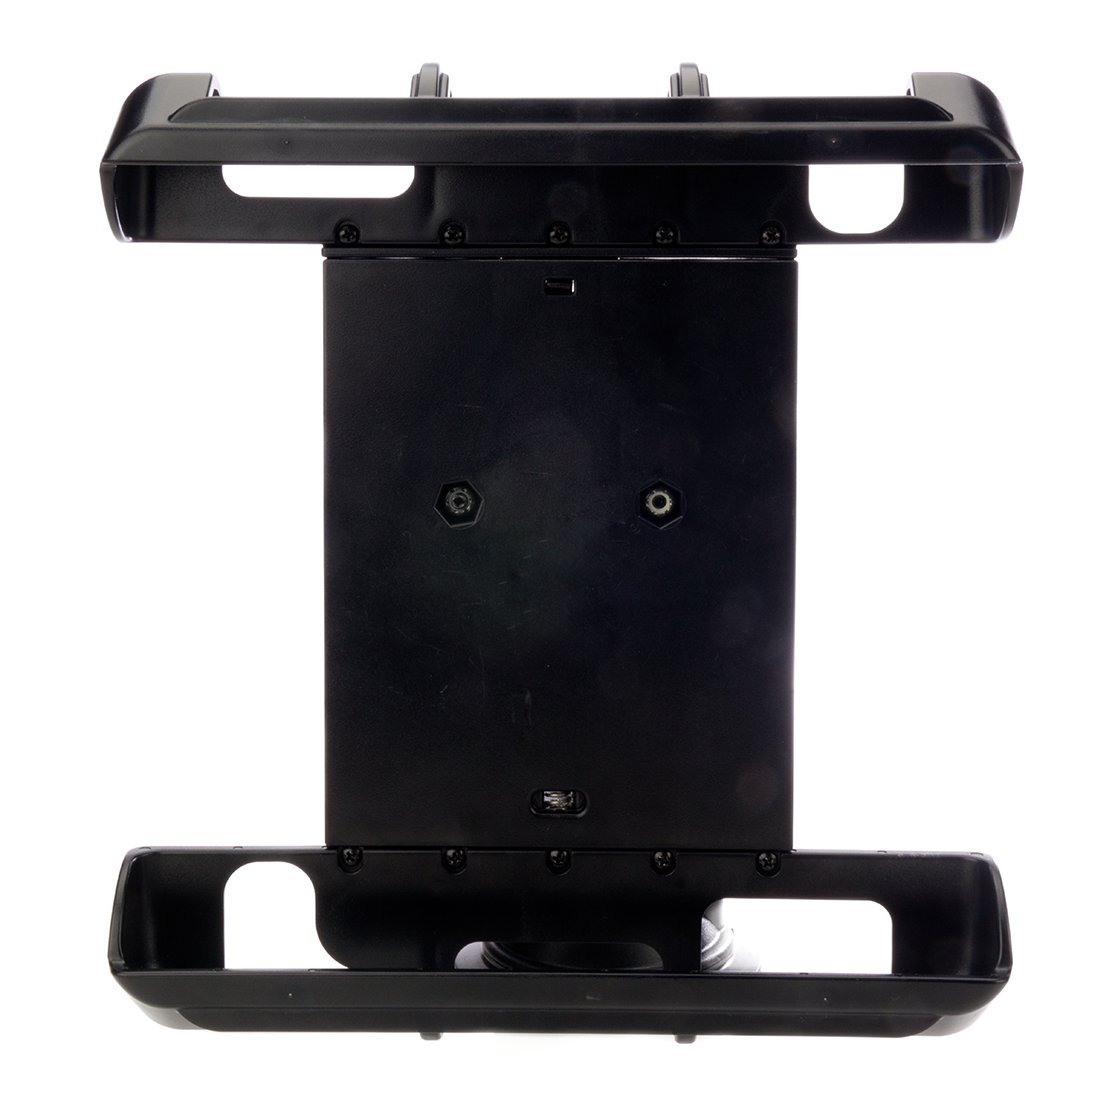 AbleNet 80000095 Adjustable iPad Pro Cradle with Universal Mounting Plate